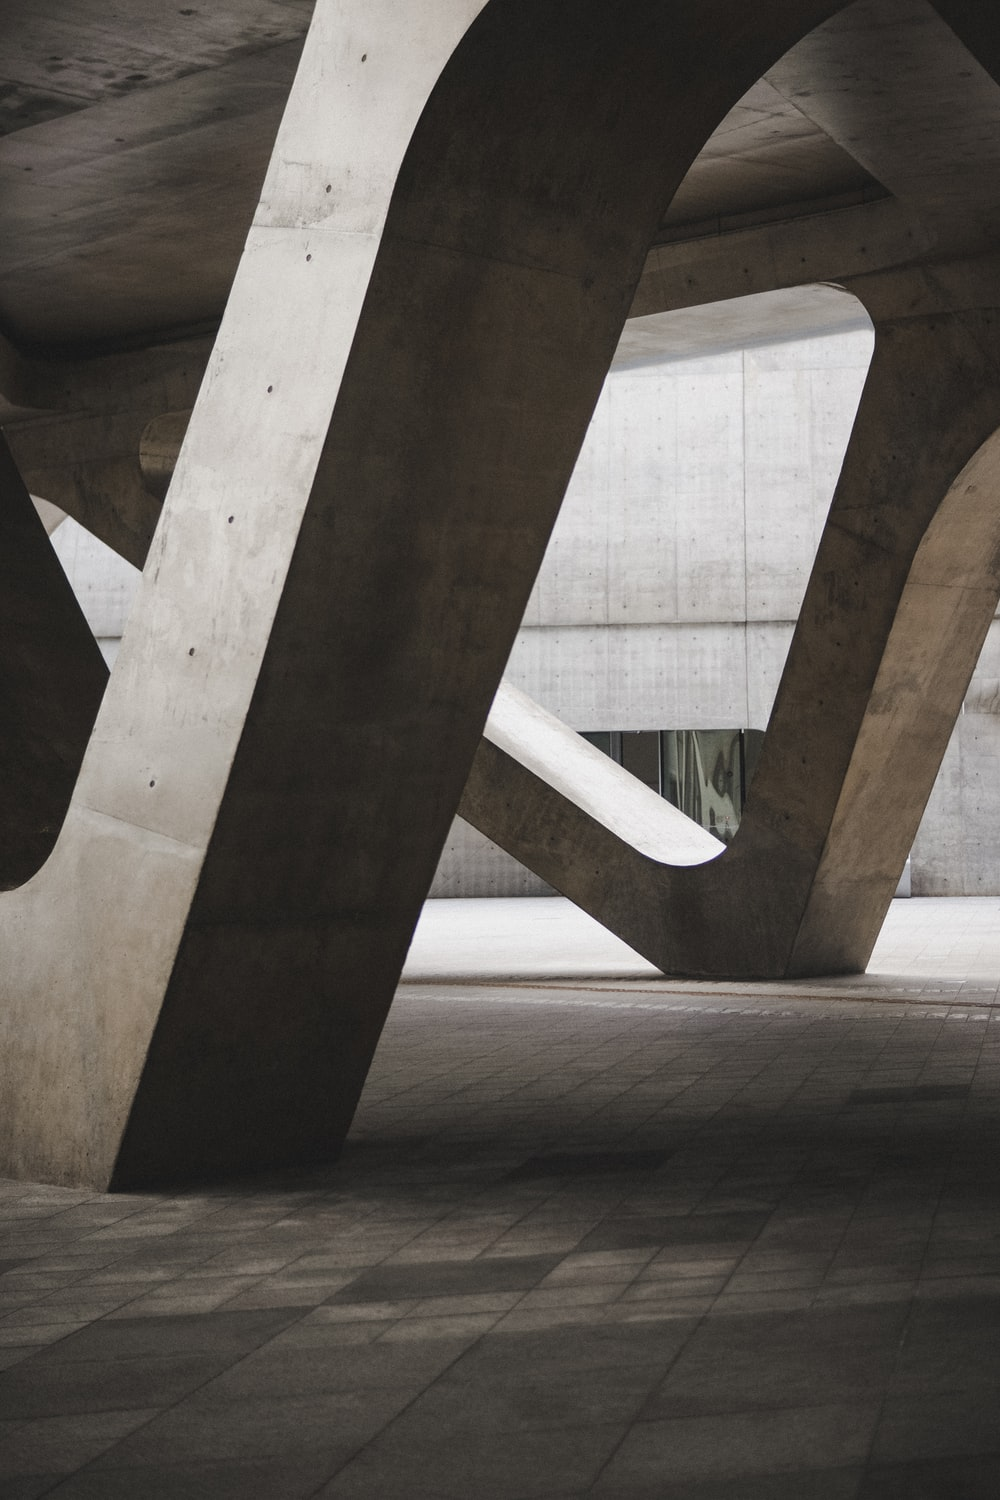 architectural photography of concrete monument